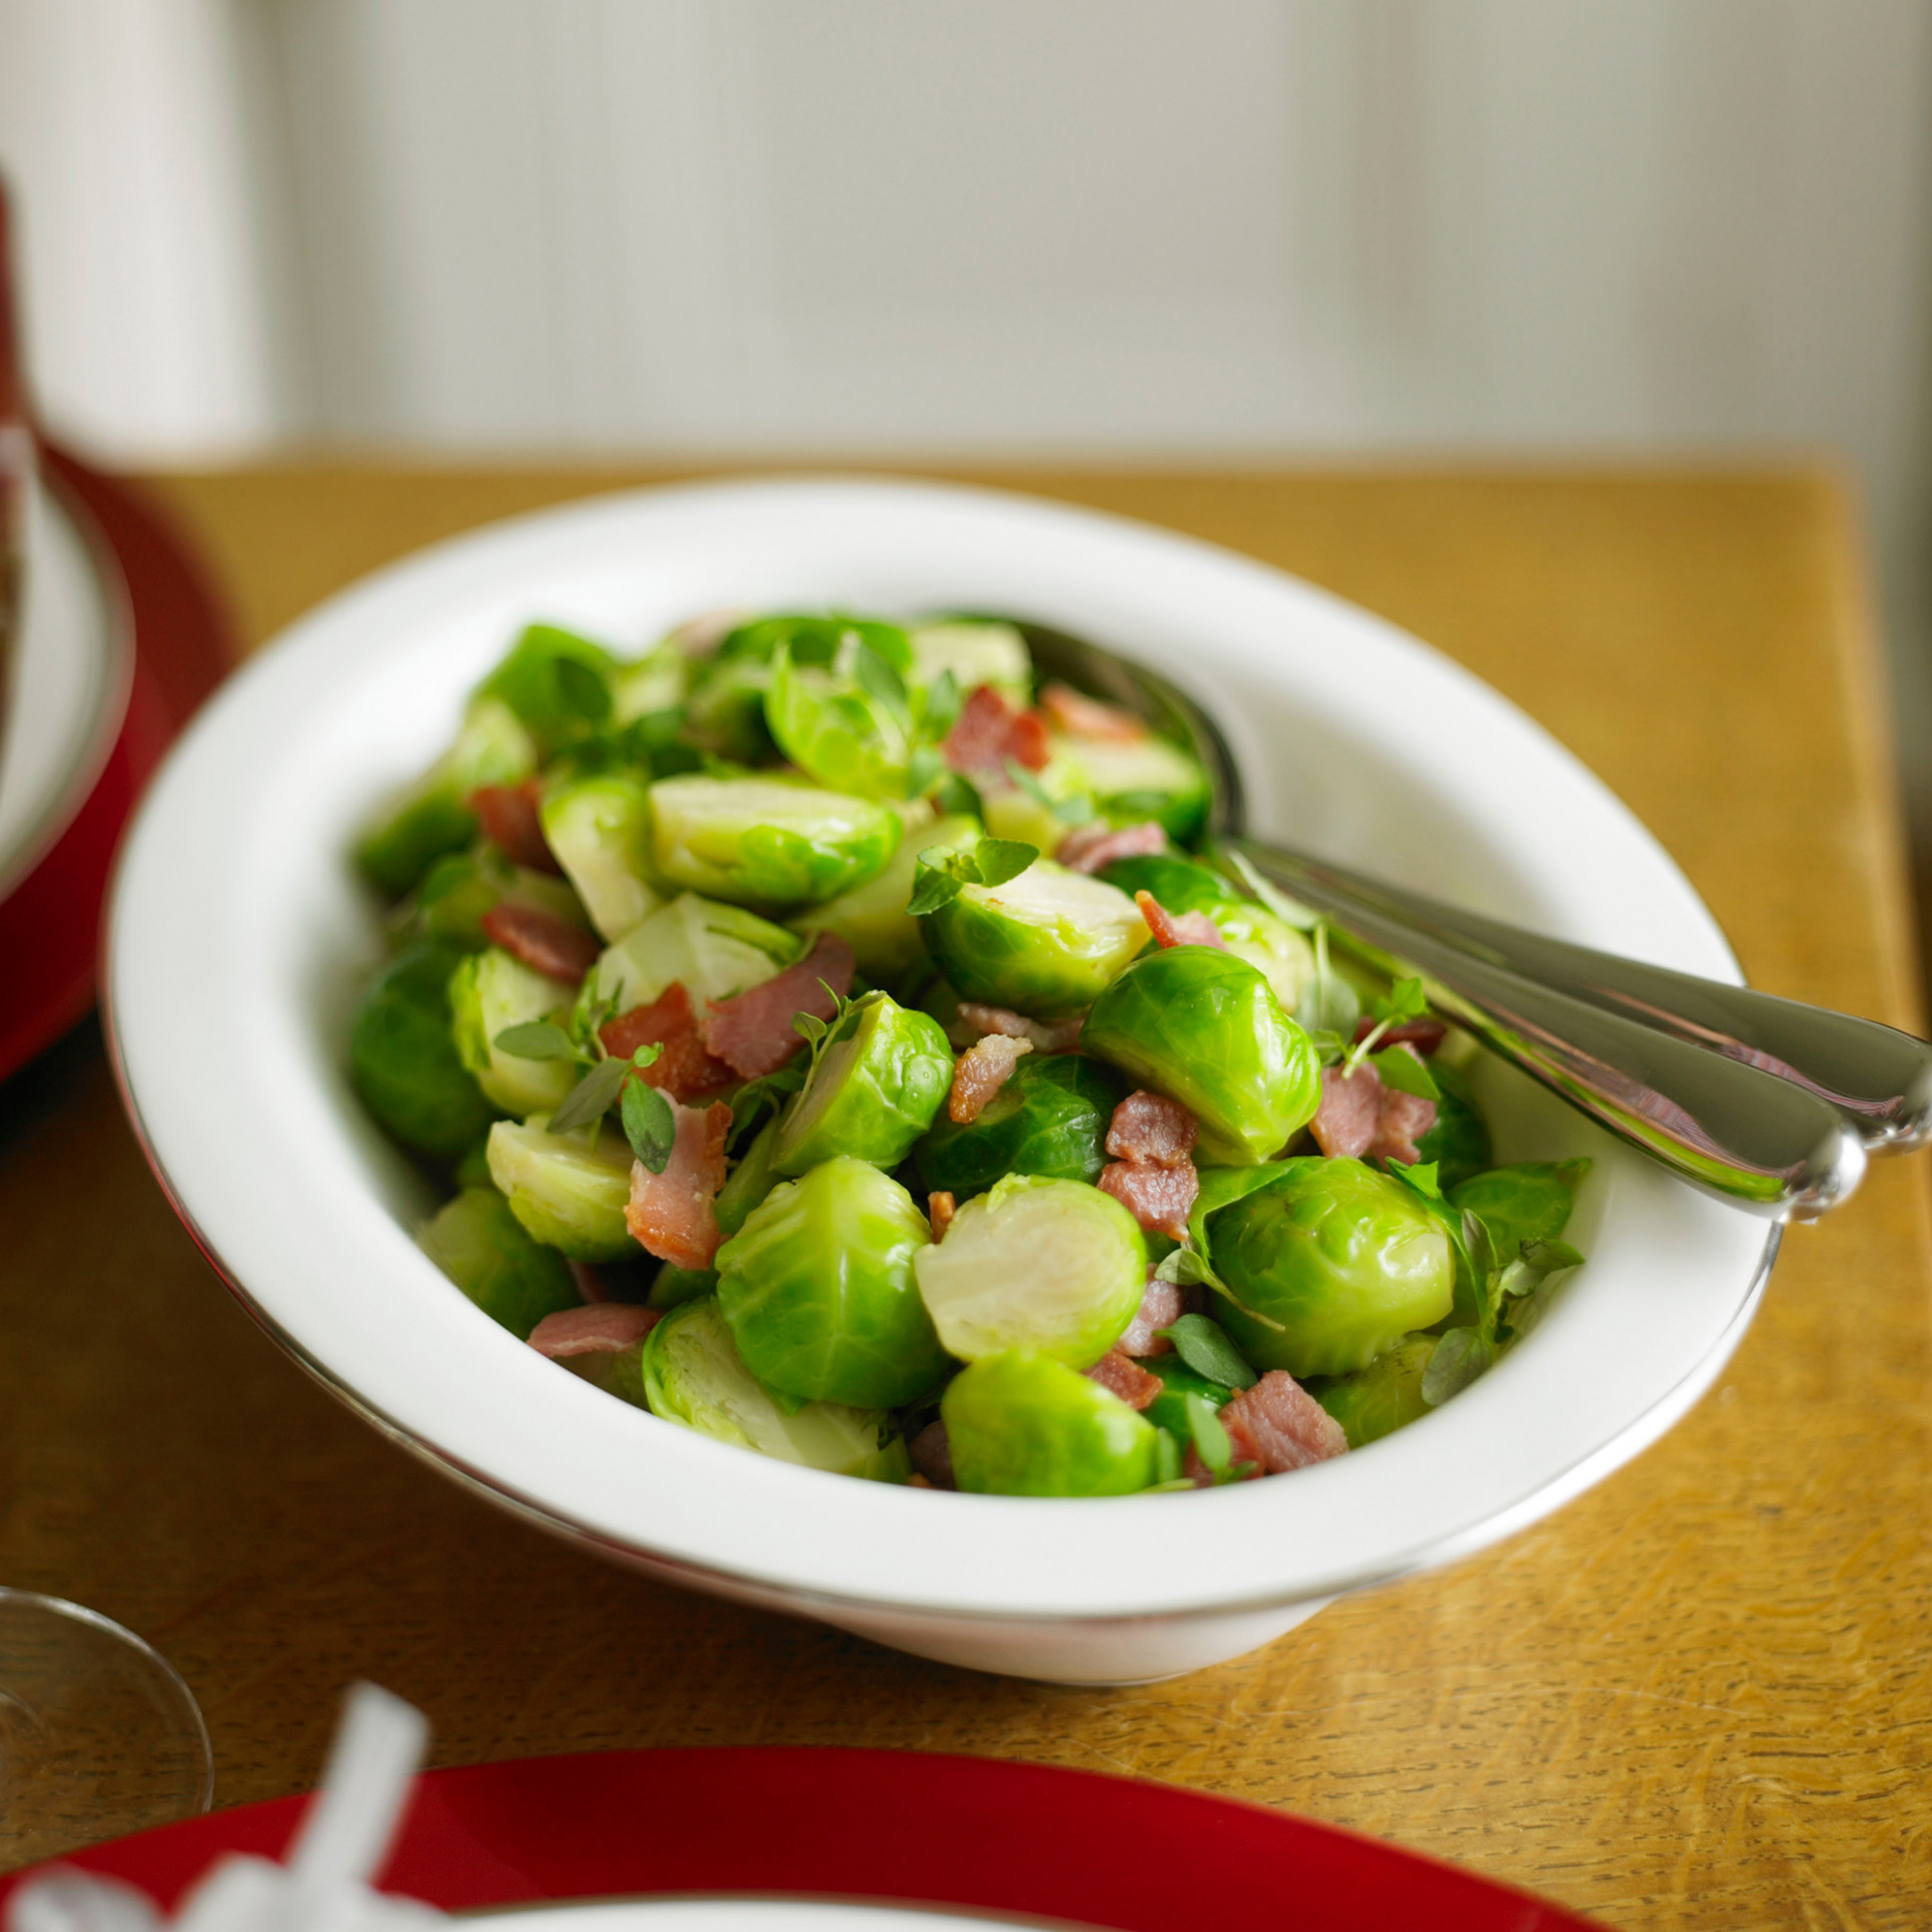 Christmas Vegetables And Sides - Vegetarian Recipes For Xmas Day